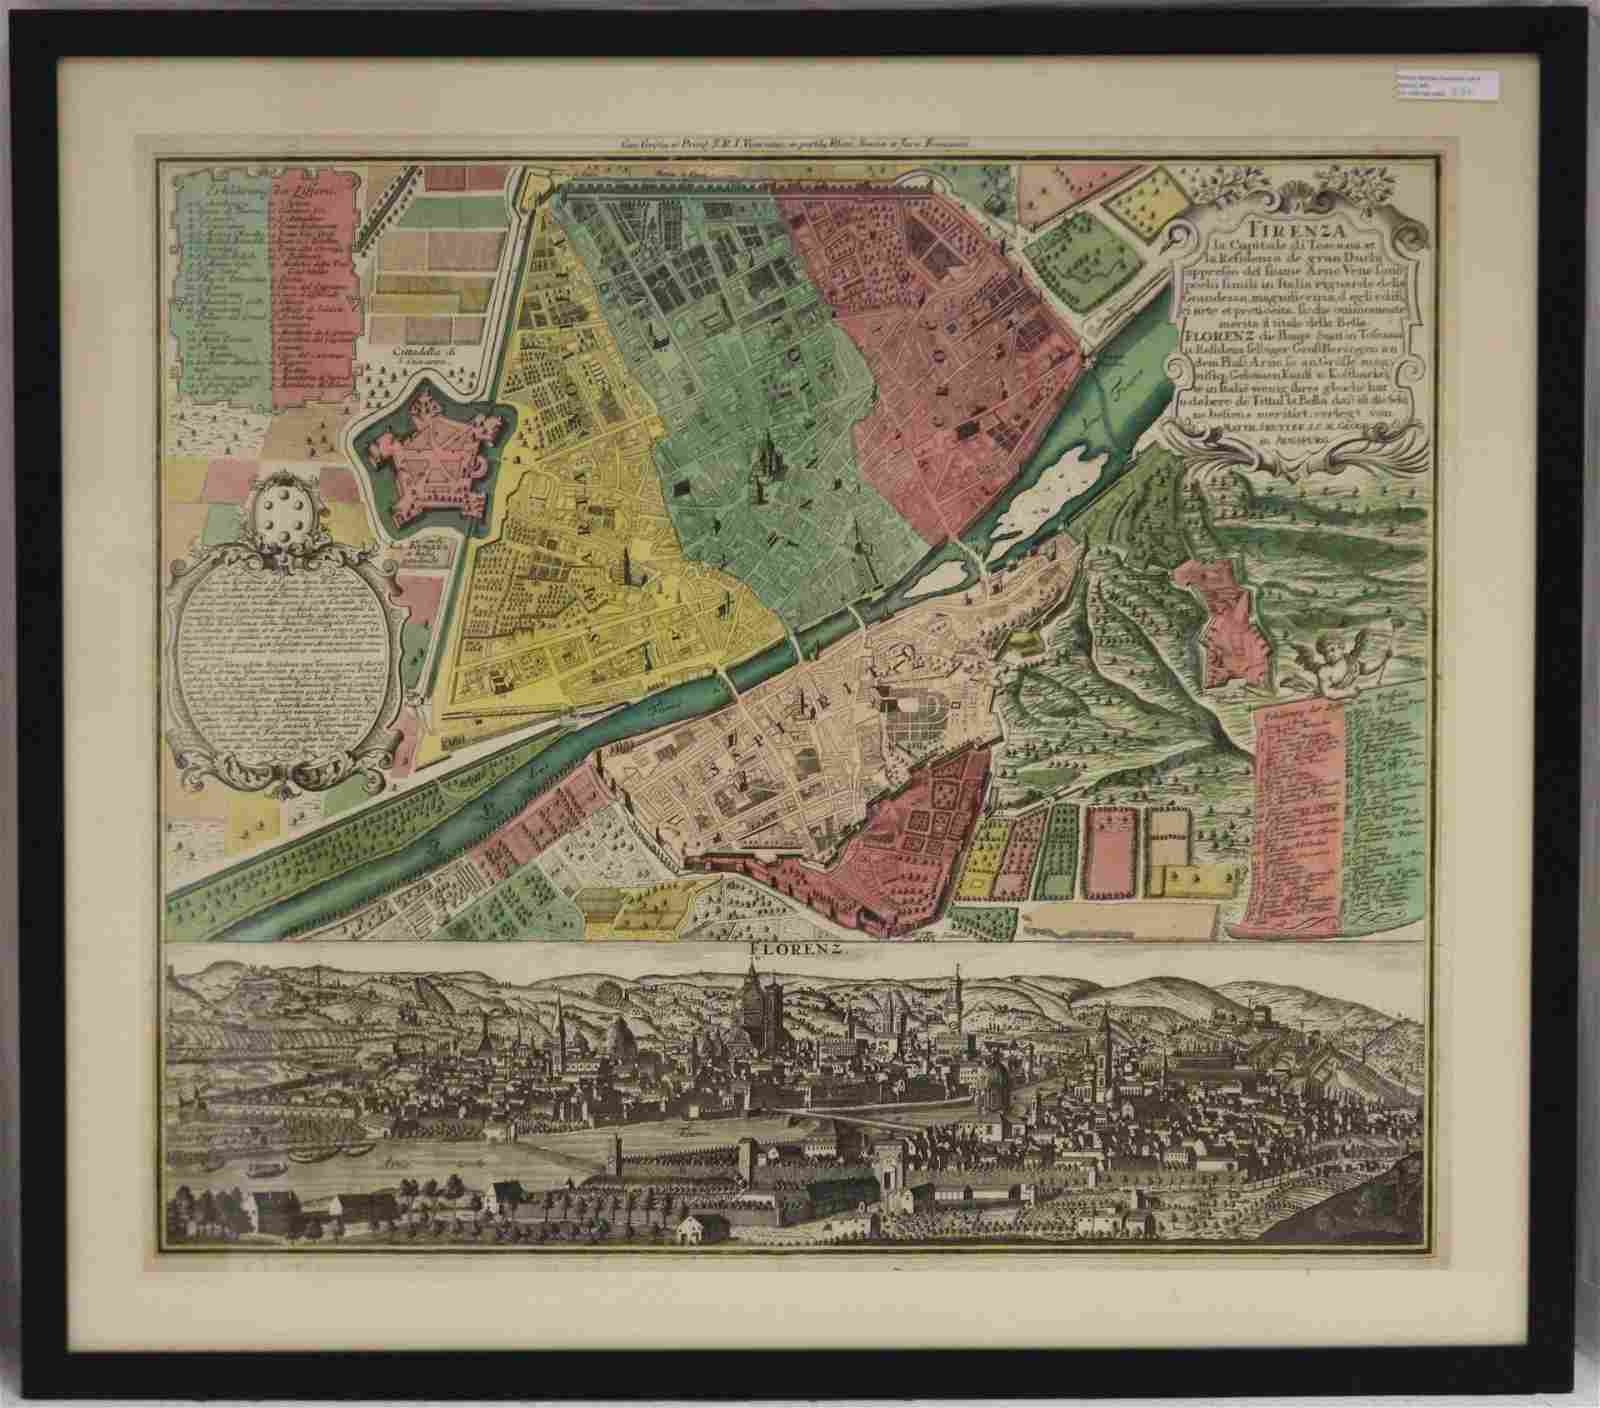 EARLY HAND COLORED MAP OF FLORENZ/FIERENZE. LATE